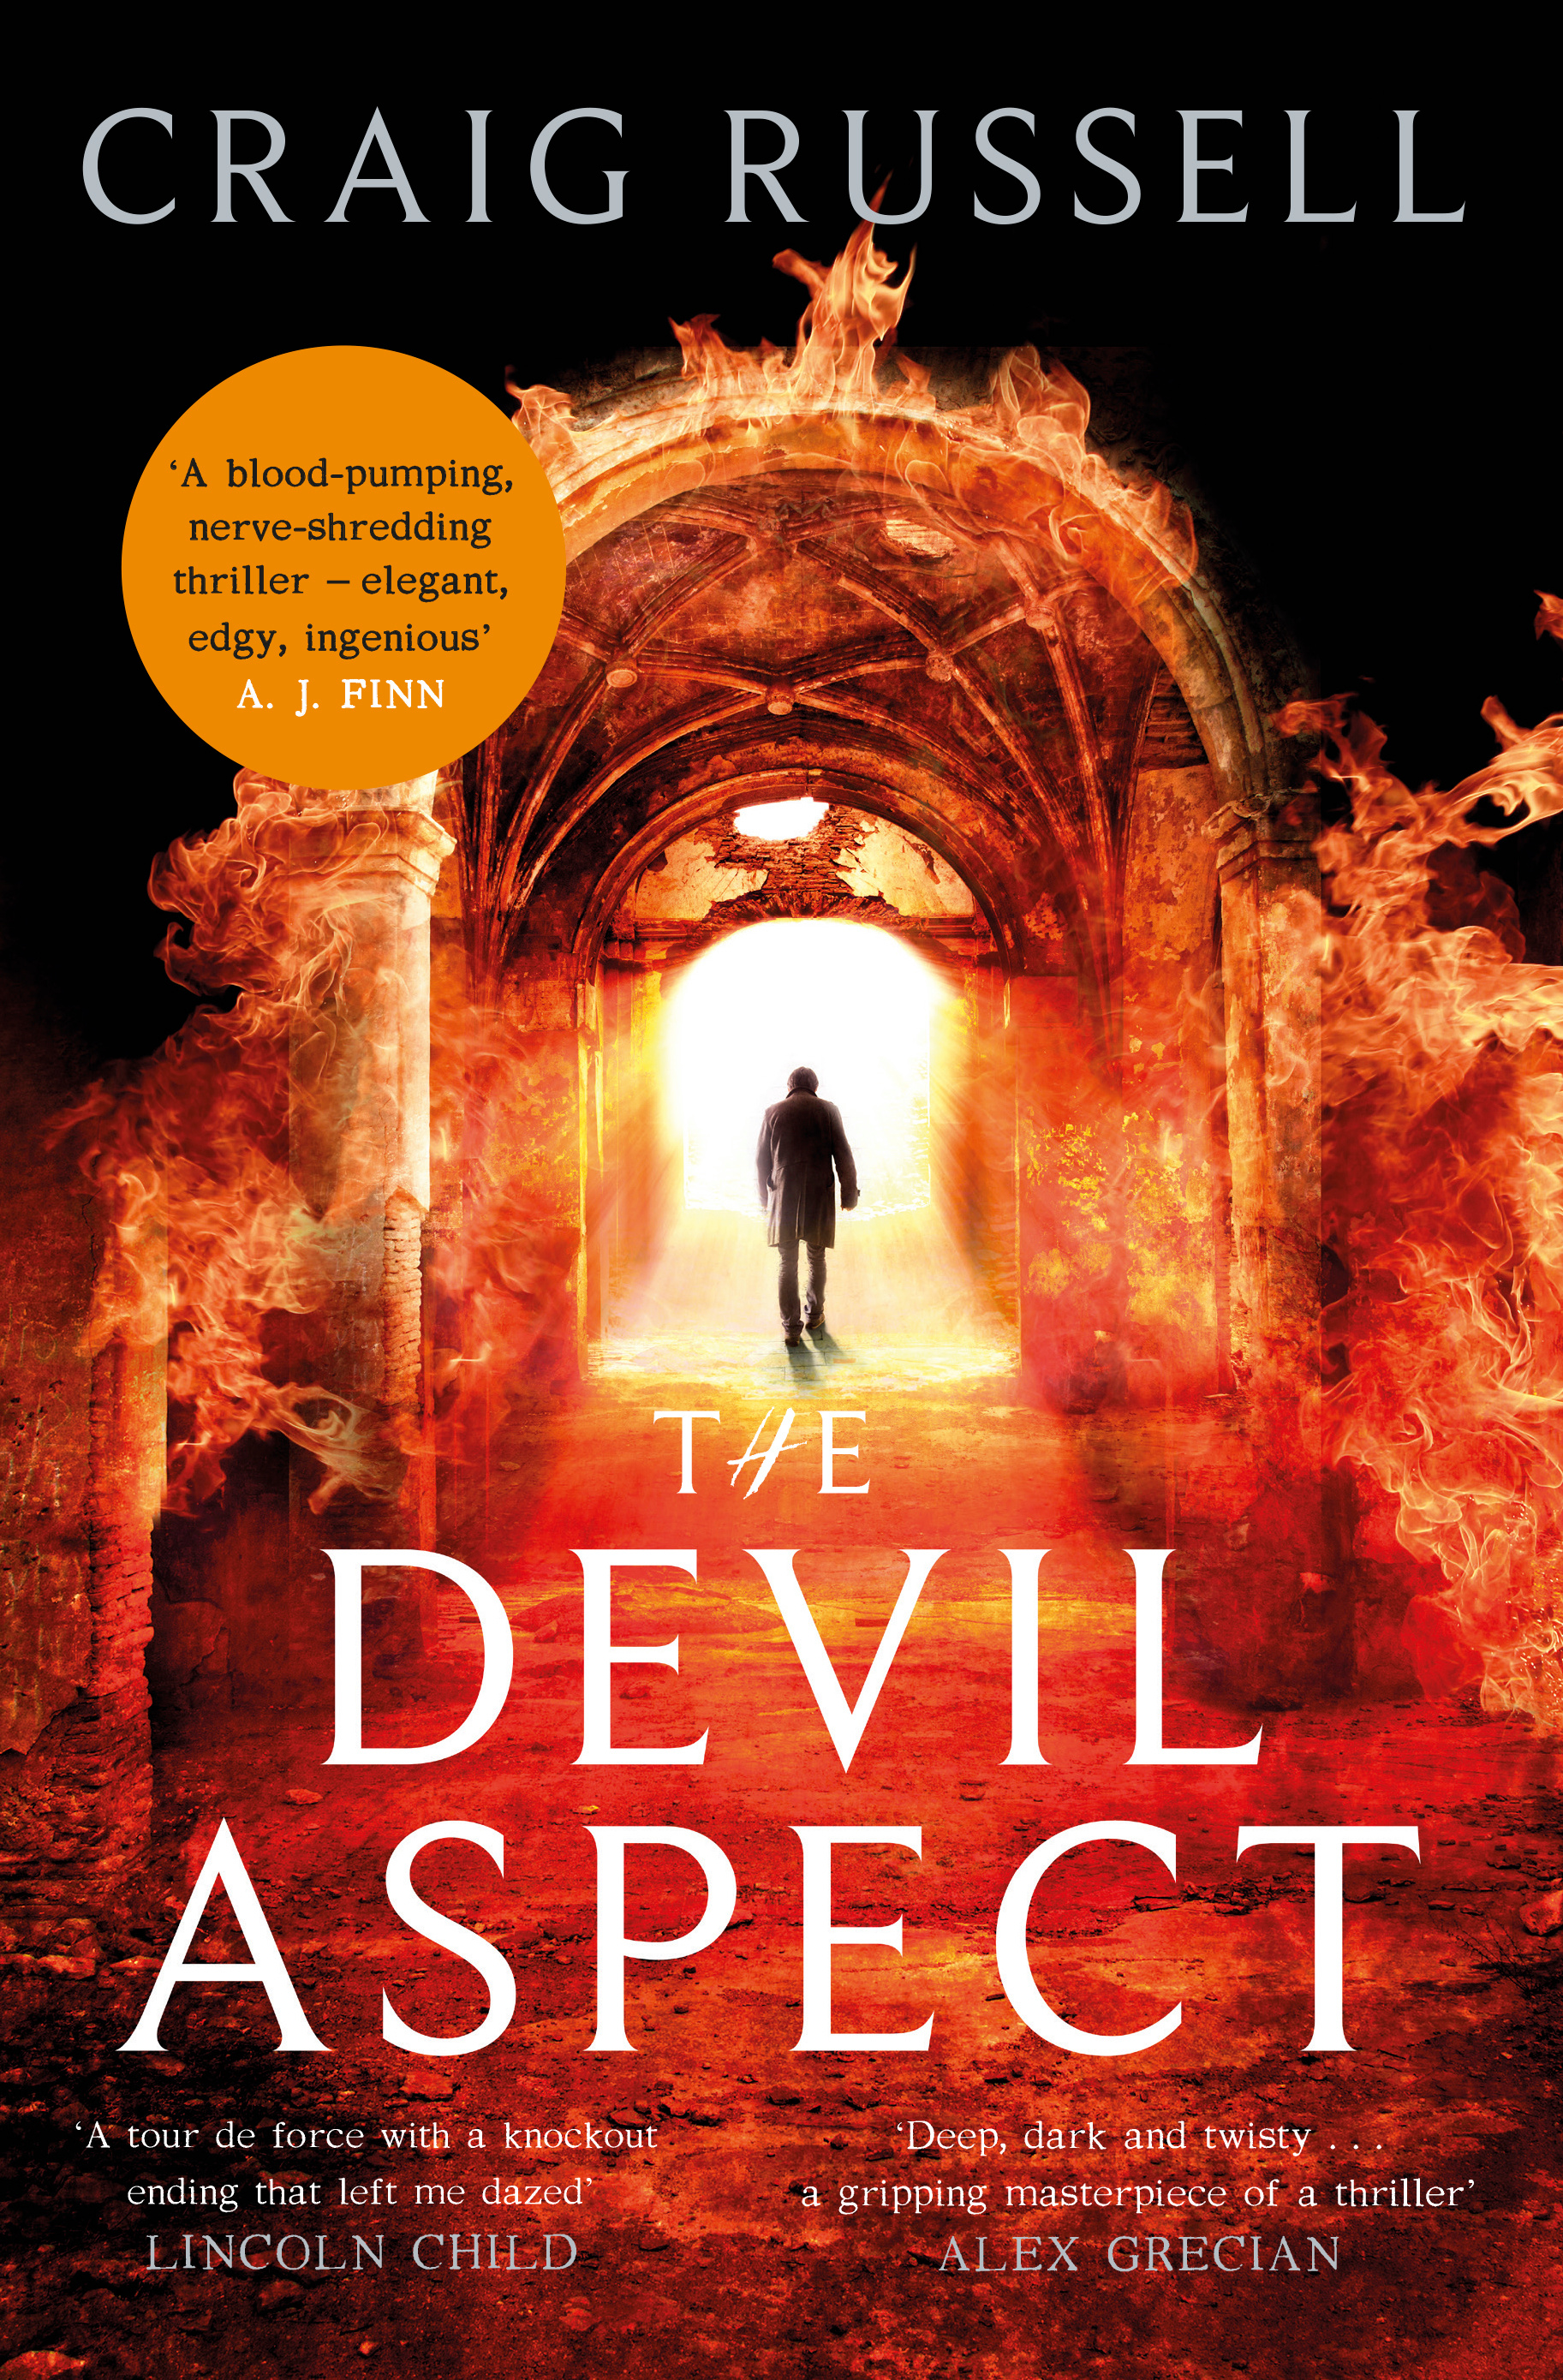 THE DEVIL ASPECT by Craig Russell (Constable, $A29.99)